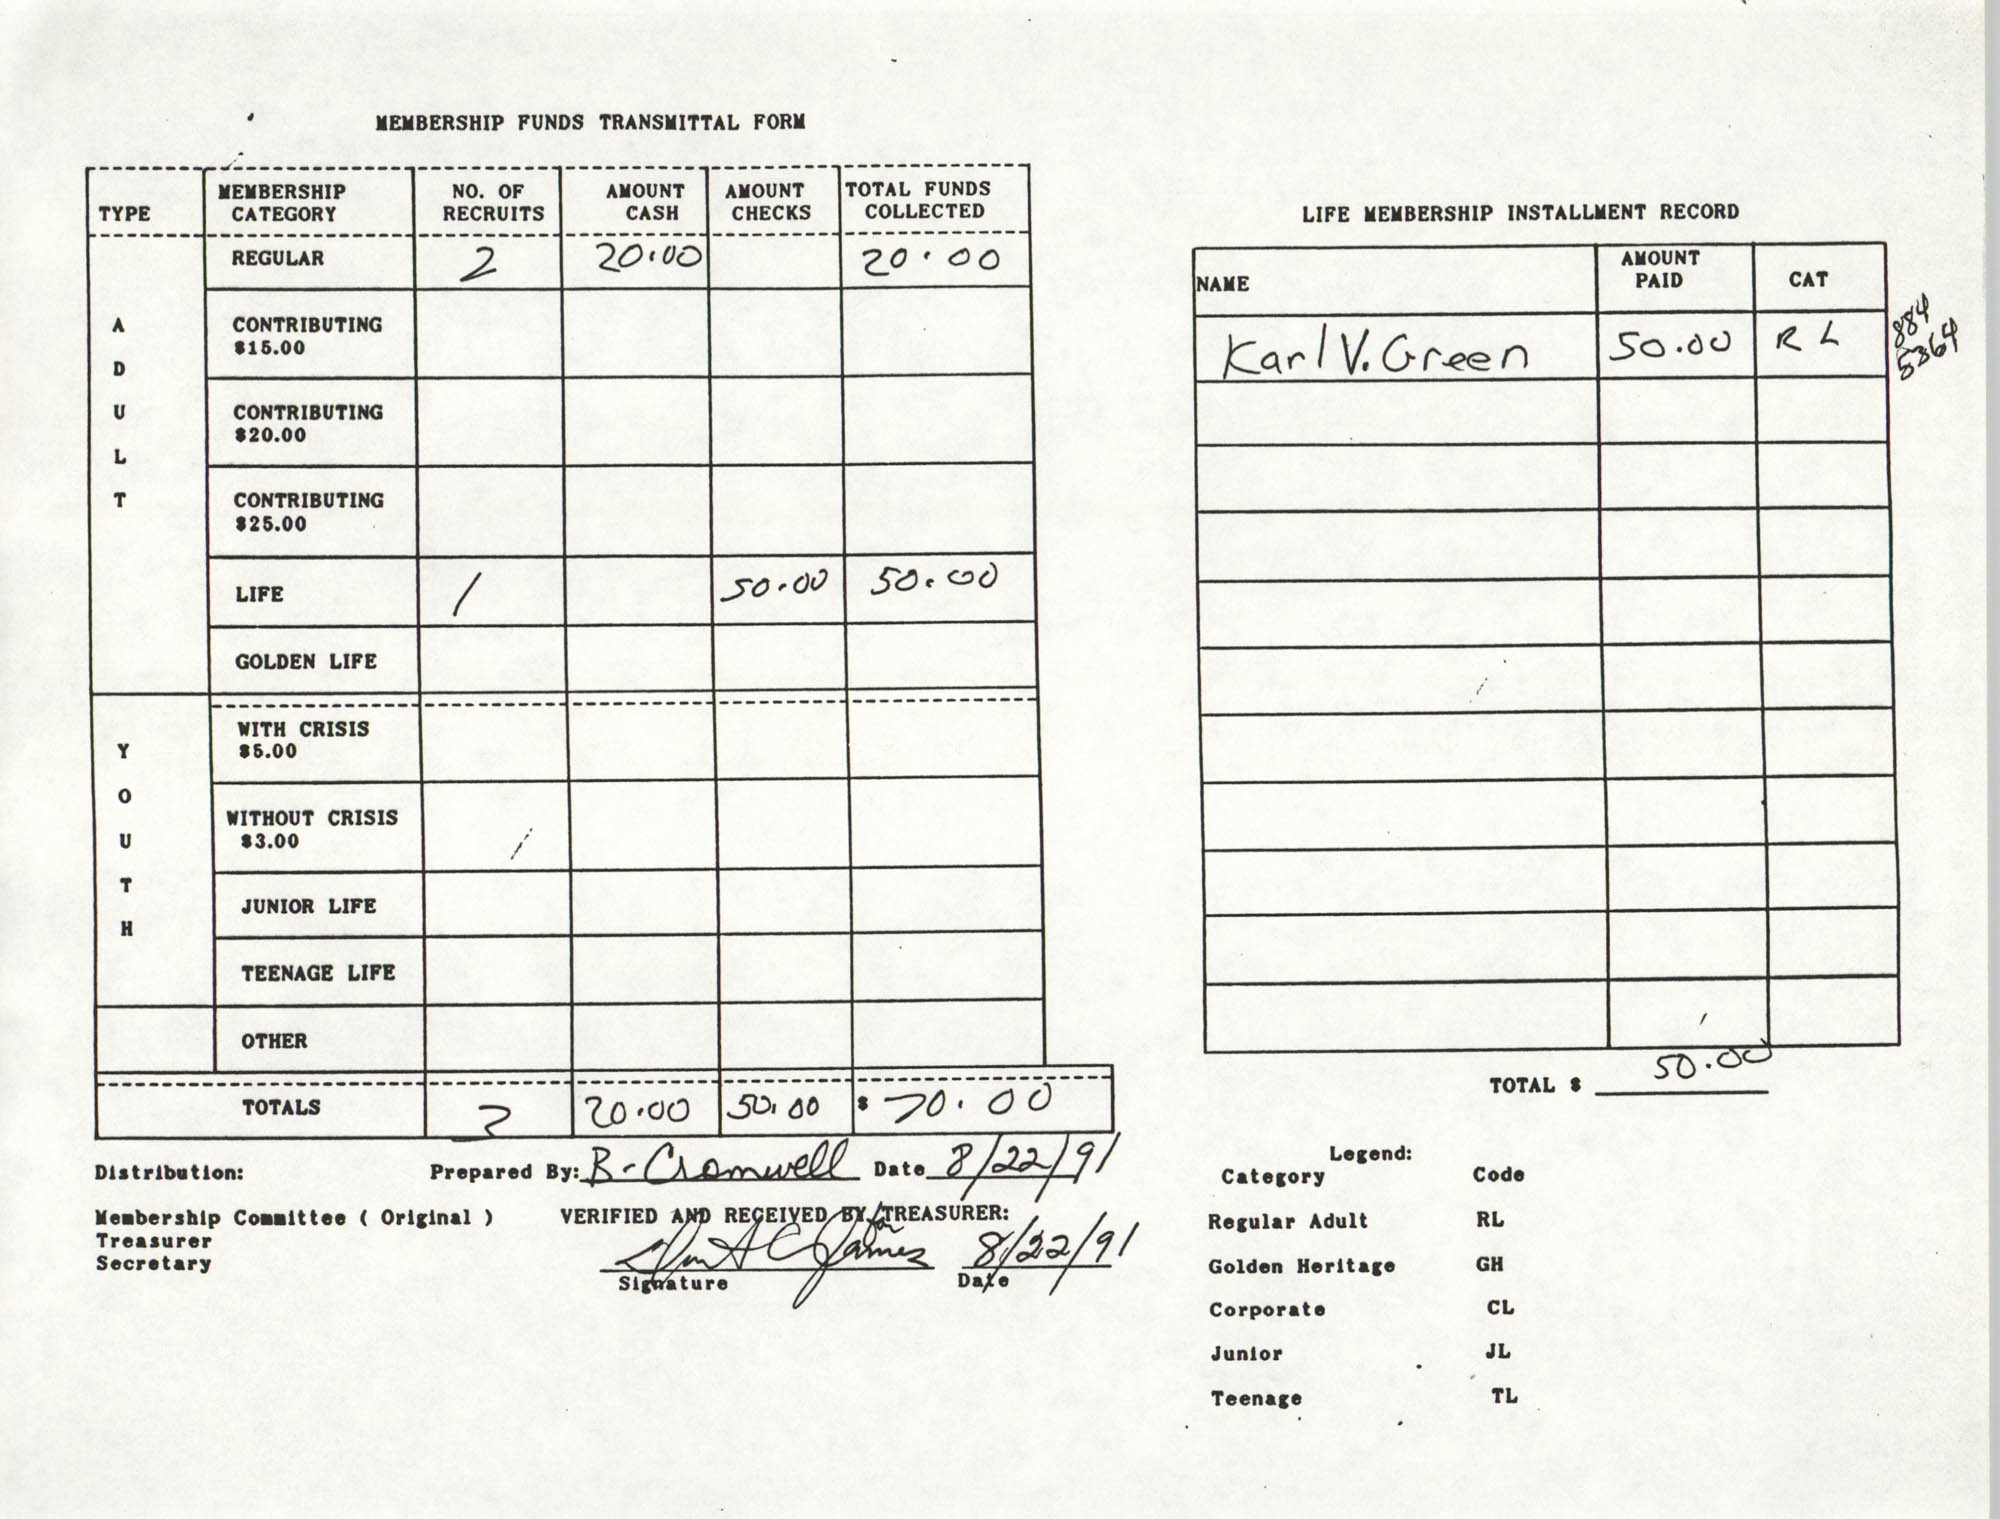 Charleston Branch of the NAACP Funds Transmittal Forms, August 1991, Page 4